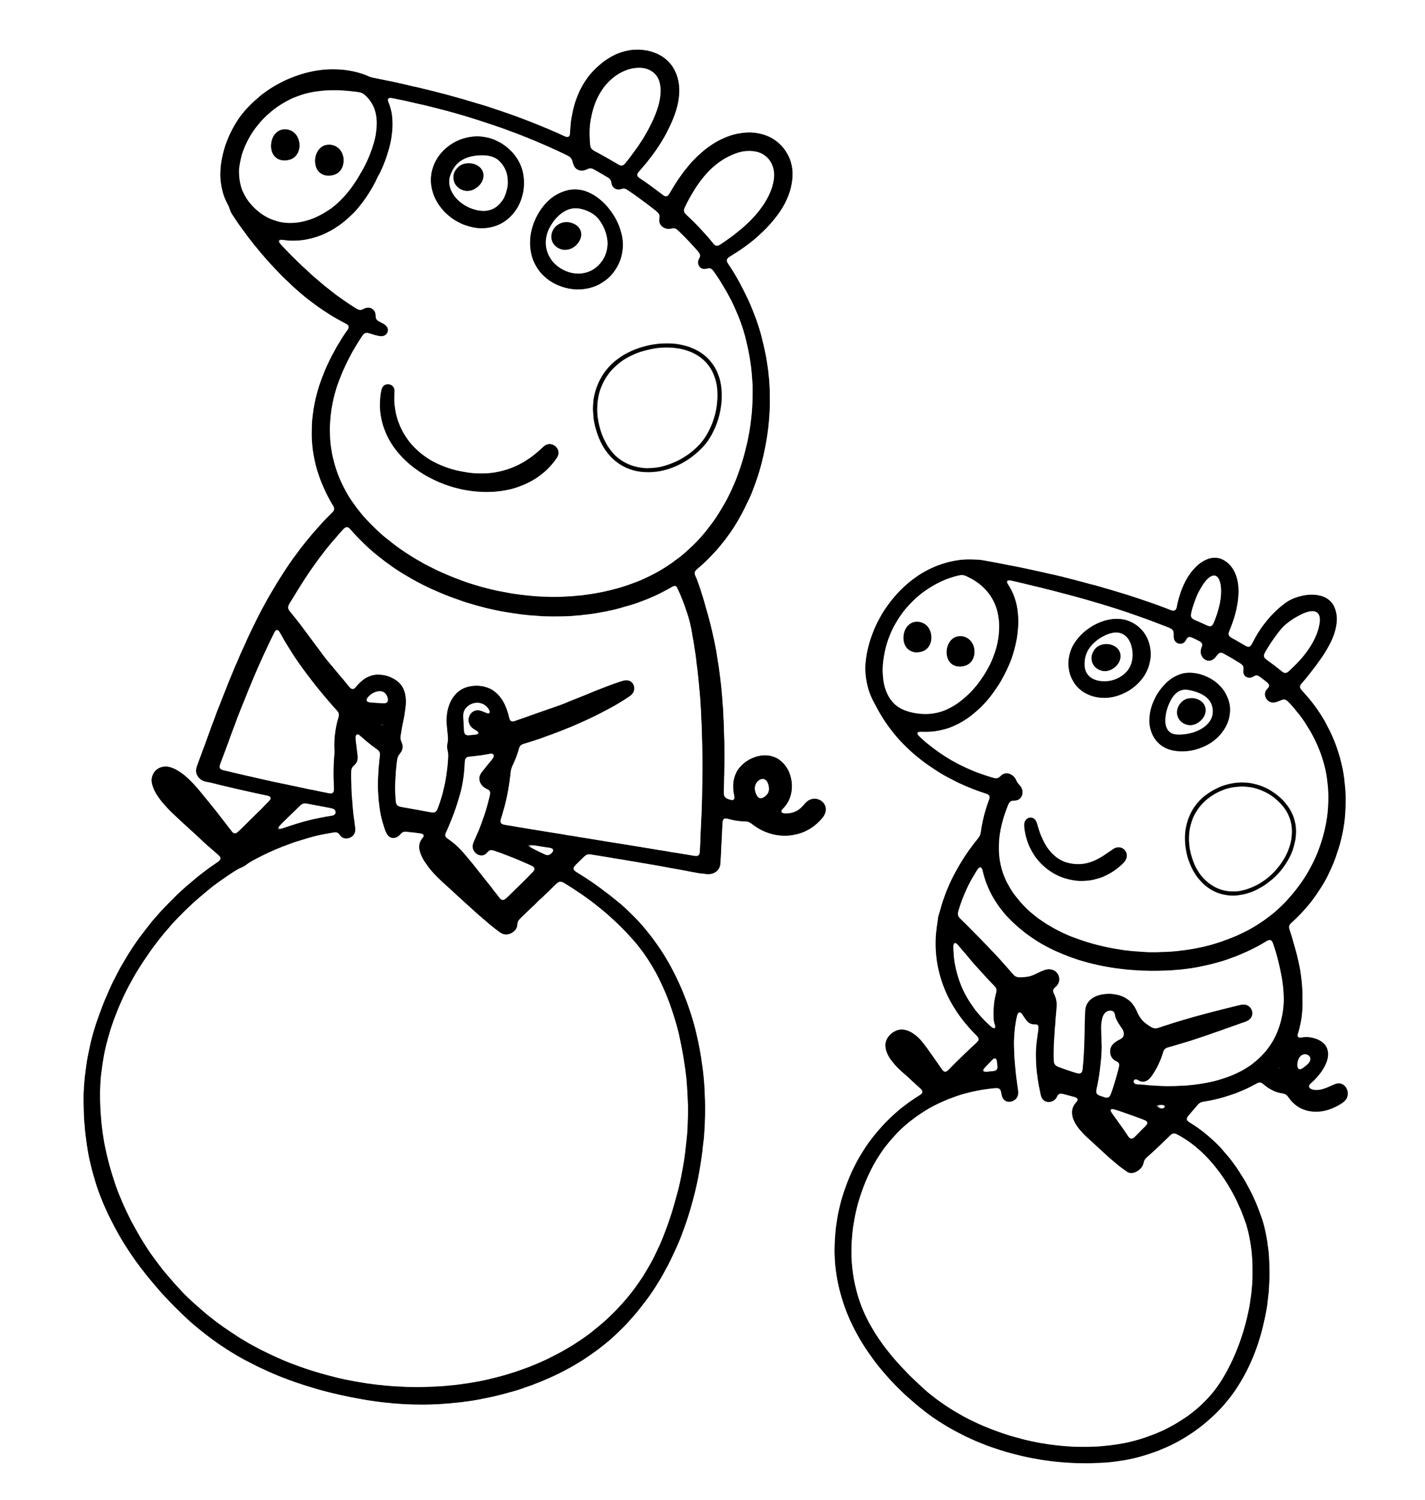 Peppa Pig Peppa Pig And George Are The Jugglers On The Ball